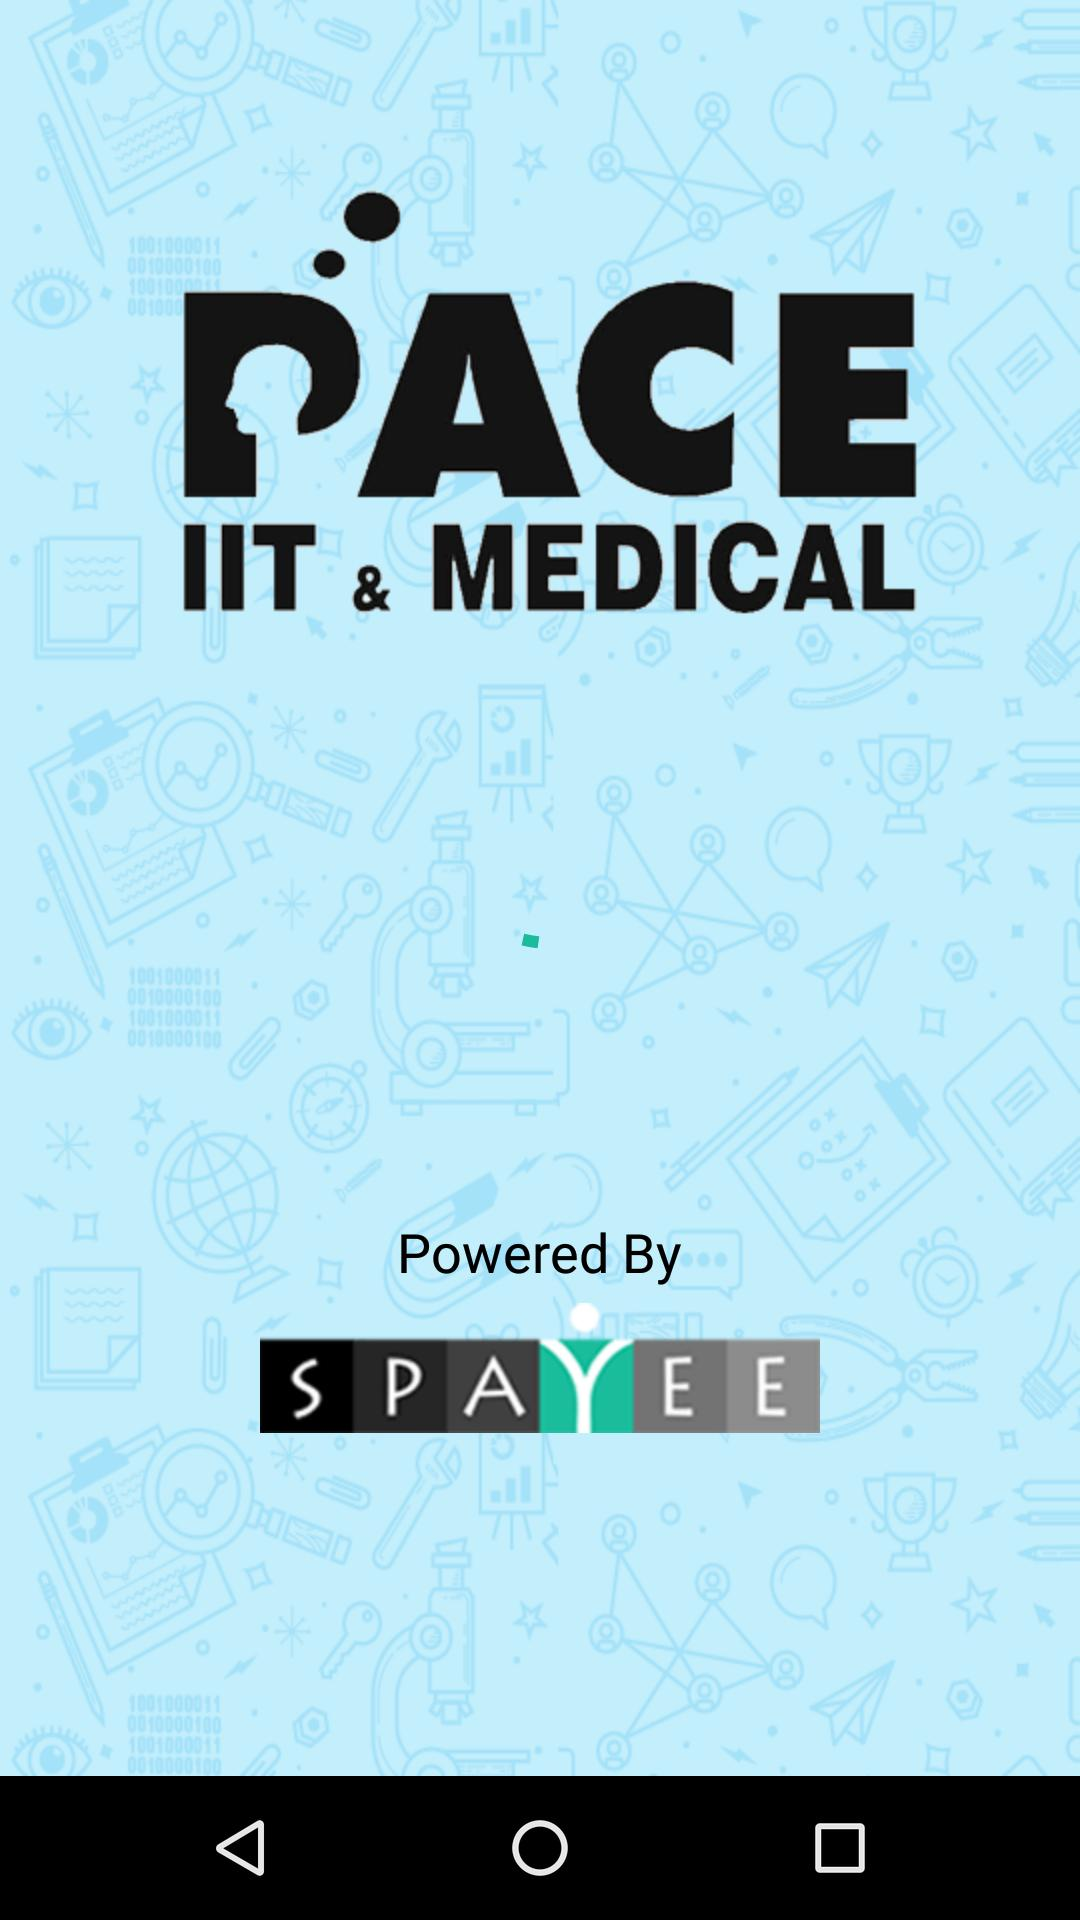 PACE IIT & MEDICAL - Panacea for Android - APK Download